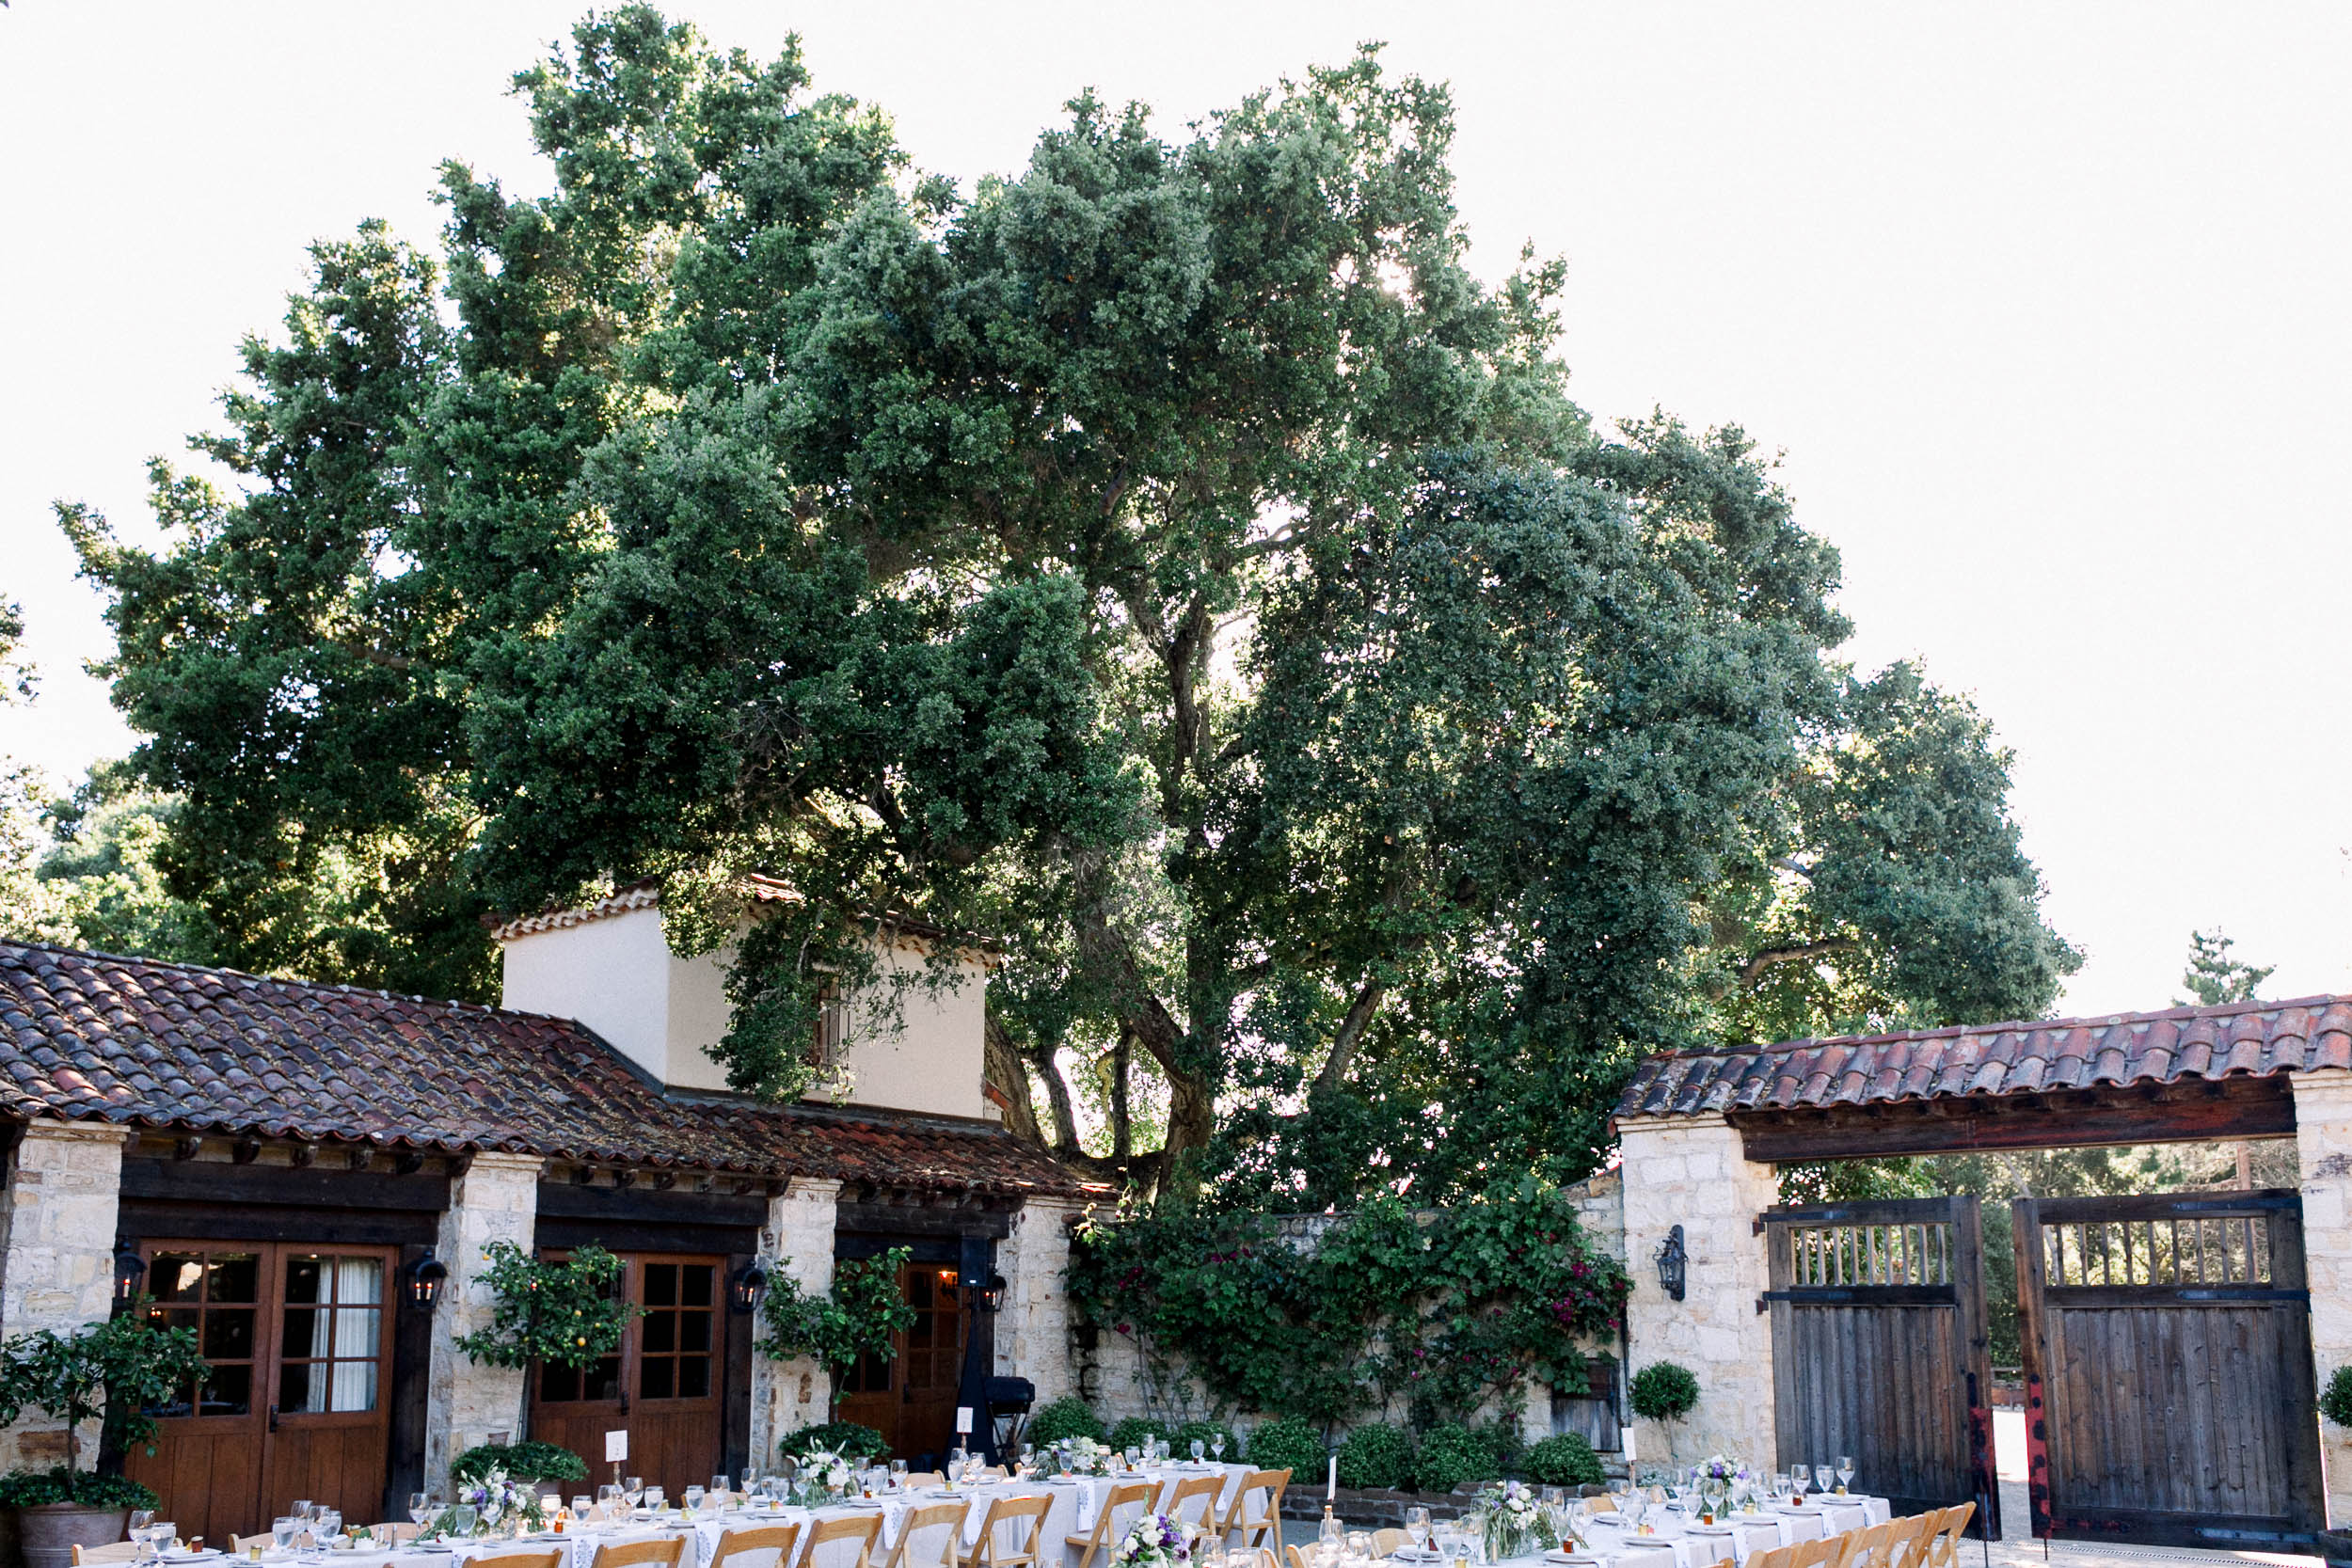 C+D_Holman Ranch Wedding_Carmel Valley_Buena Lane Photography_060619_ER447.jpg